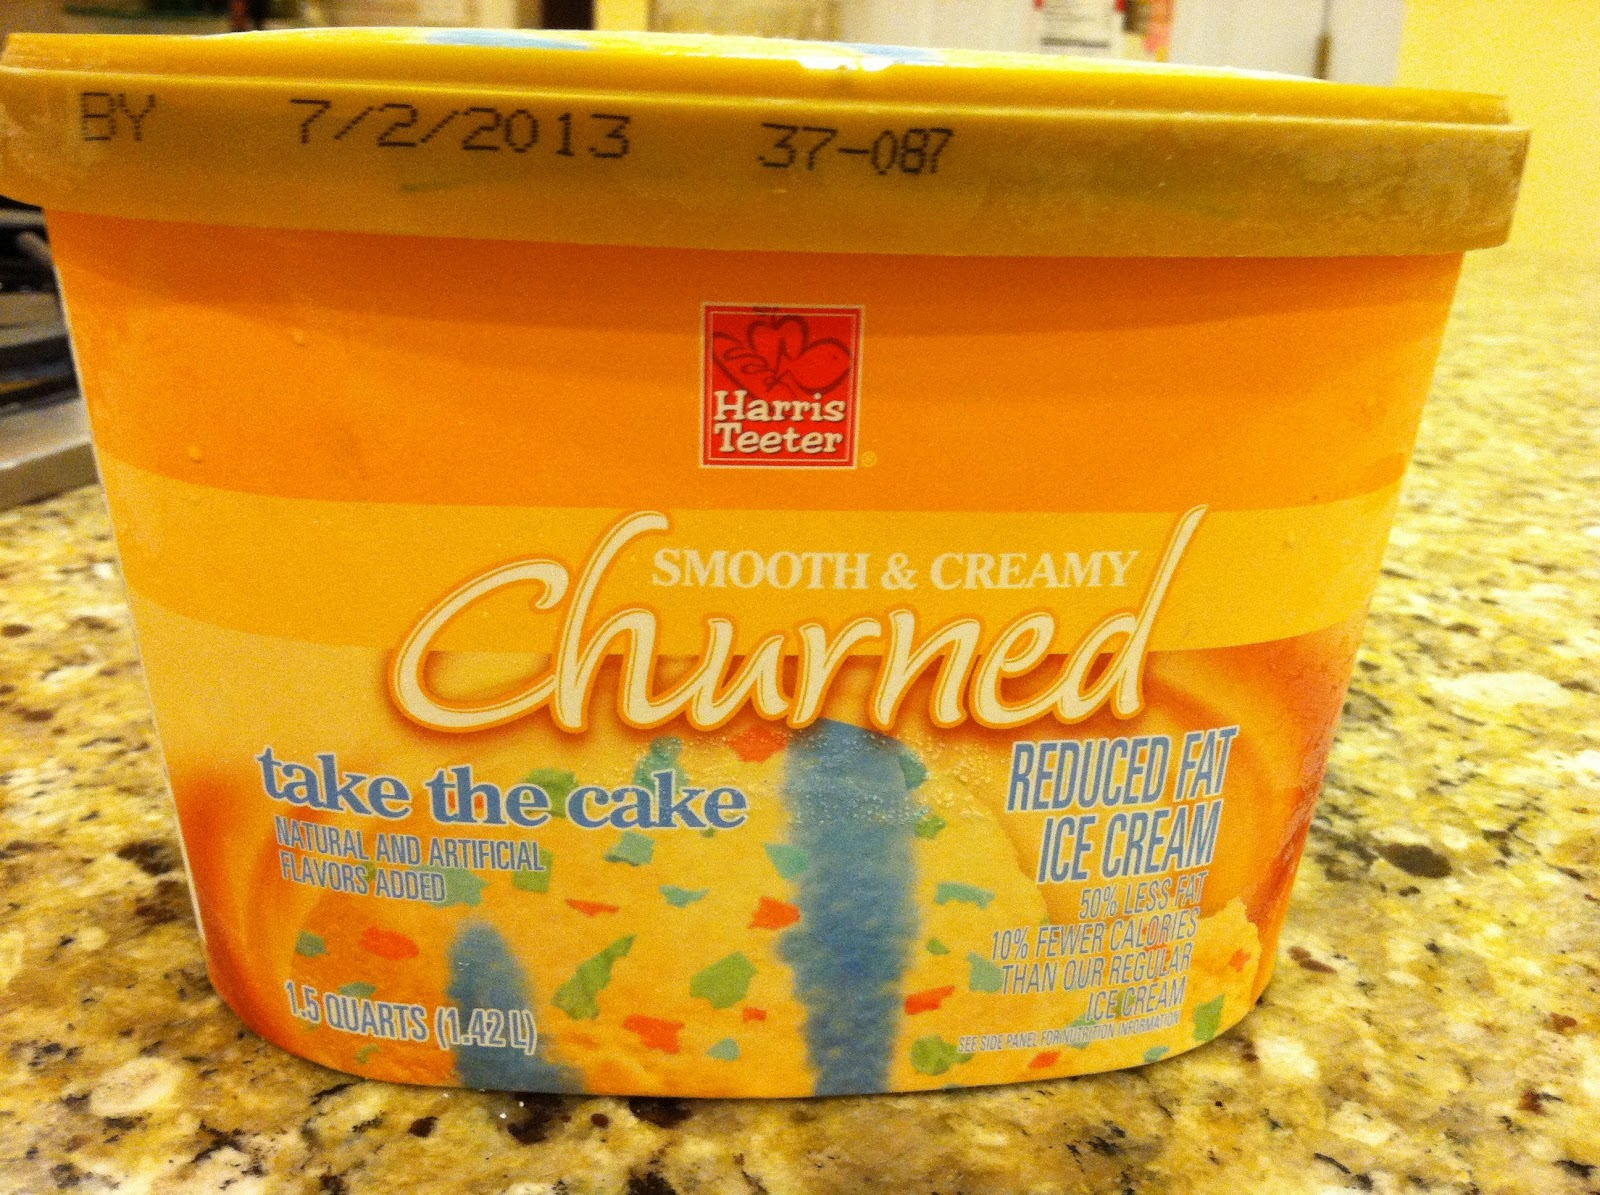 Harris Teeter Brand Reduced Fat Take The Cake I Love This Birthday Flavored Ice Cream With Sprinkles And